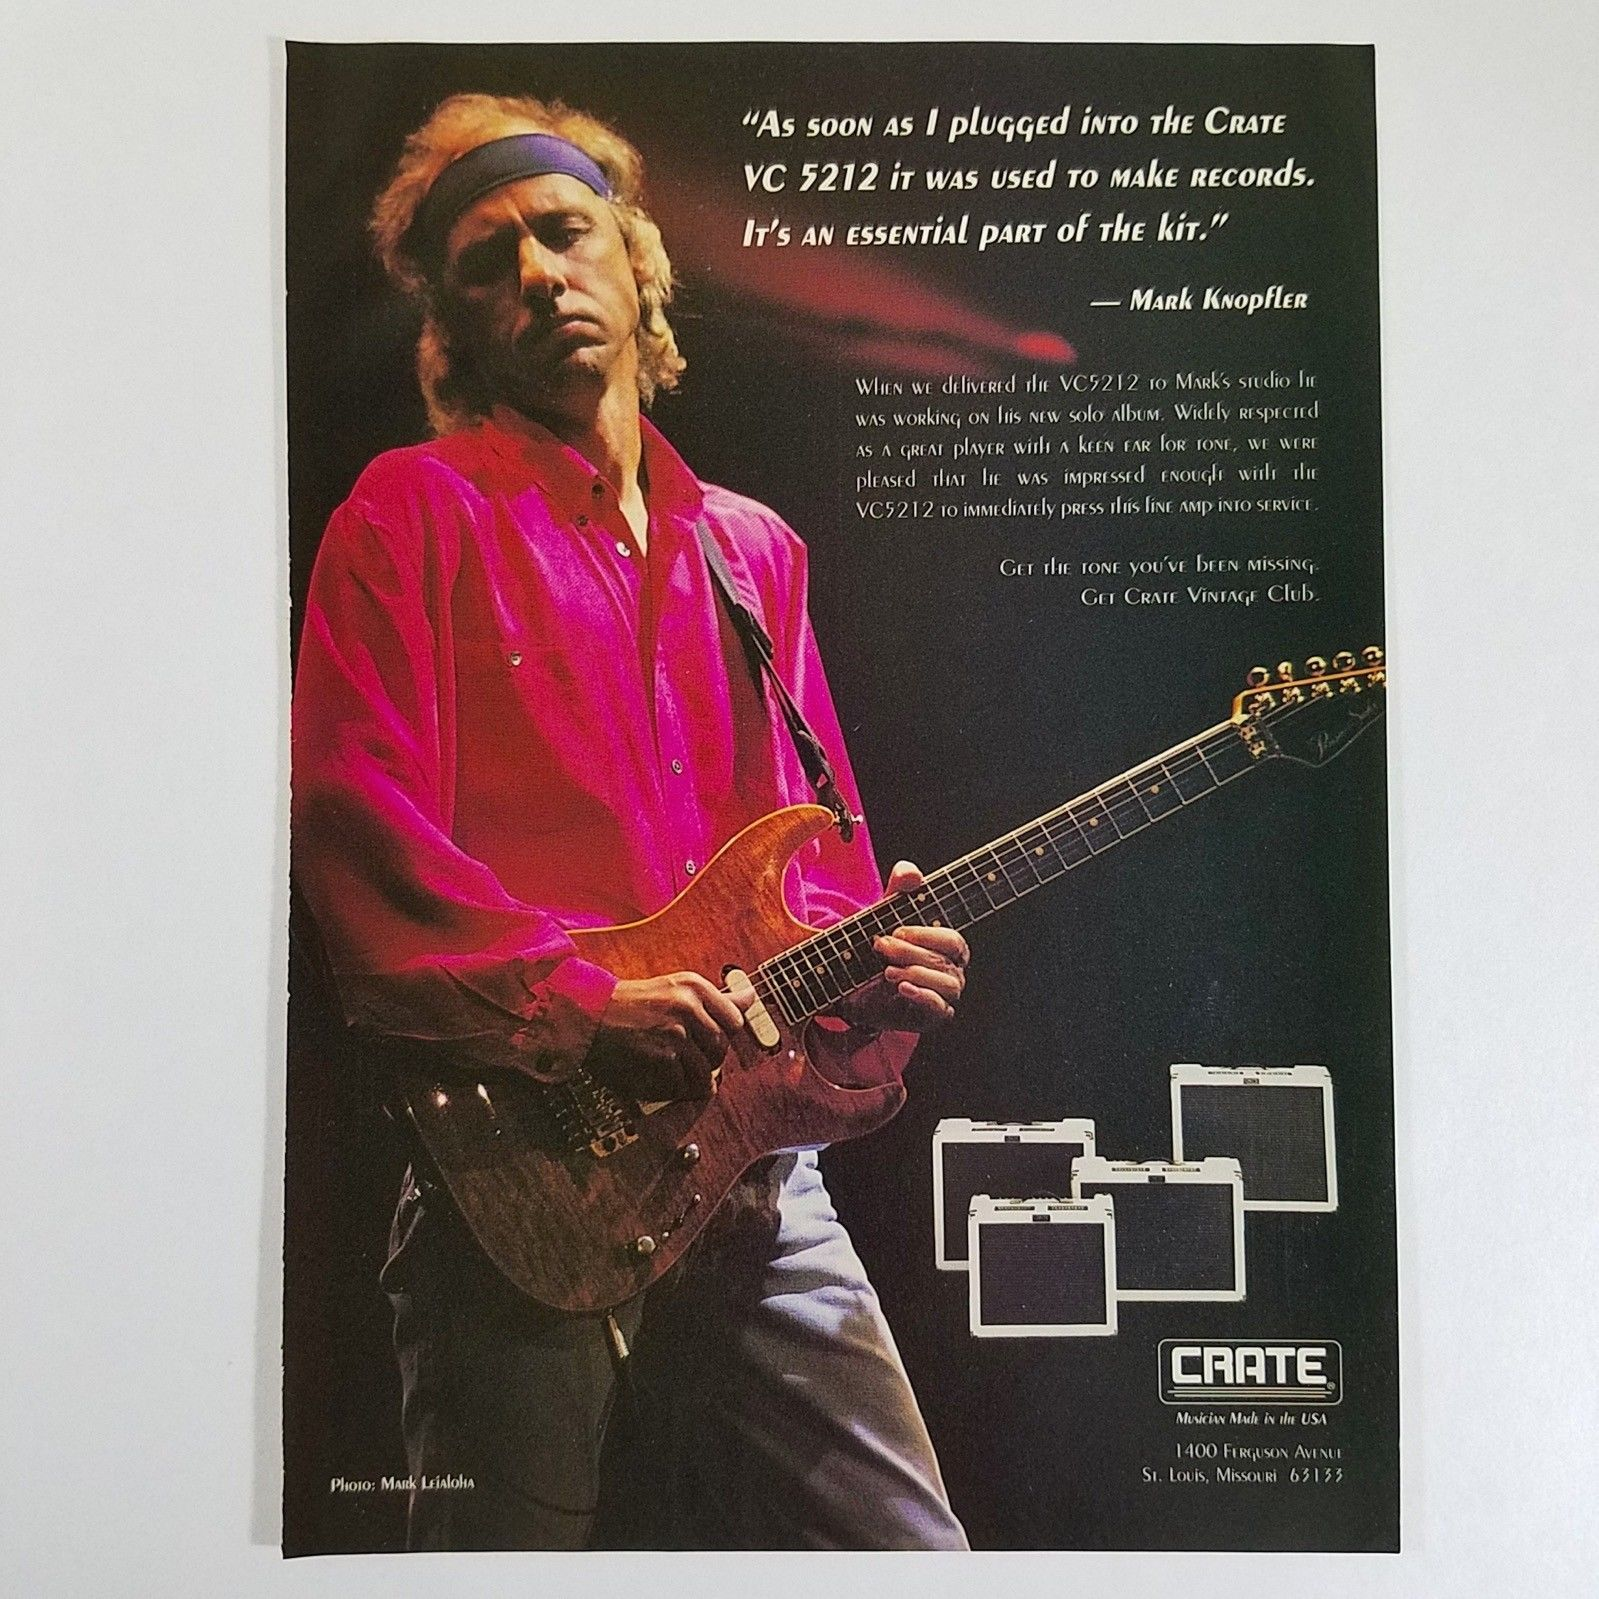 1996 Mark Knopfler Crate Amp Vc5212 Print Ad Mark Knopfler Dire Straits Fender American Special